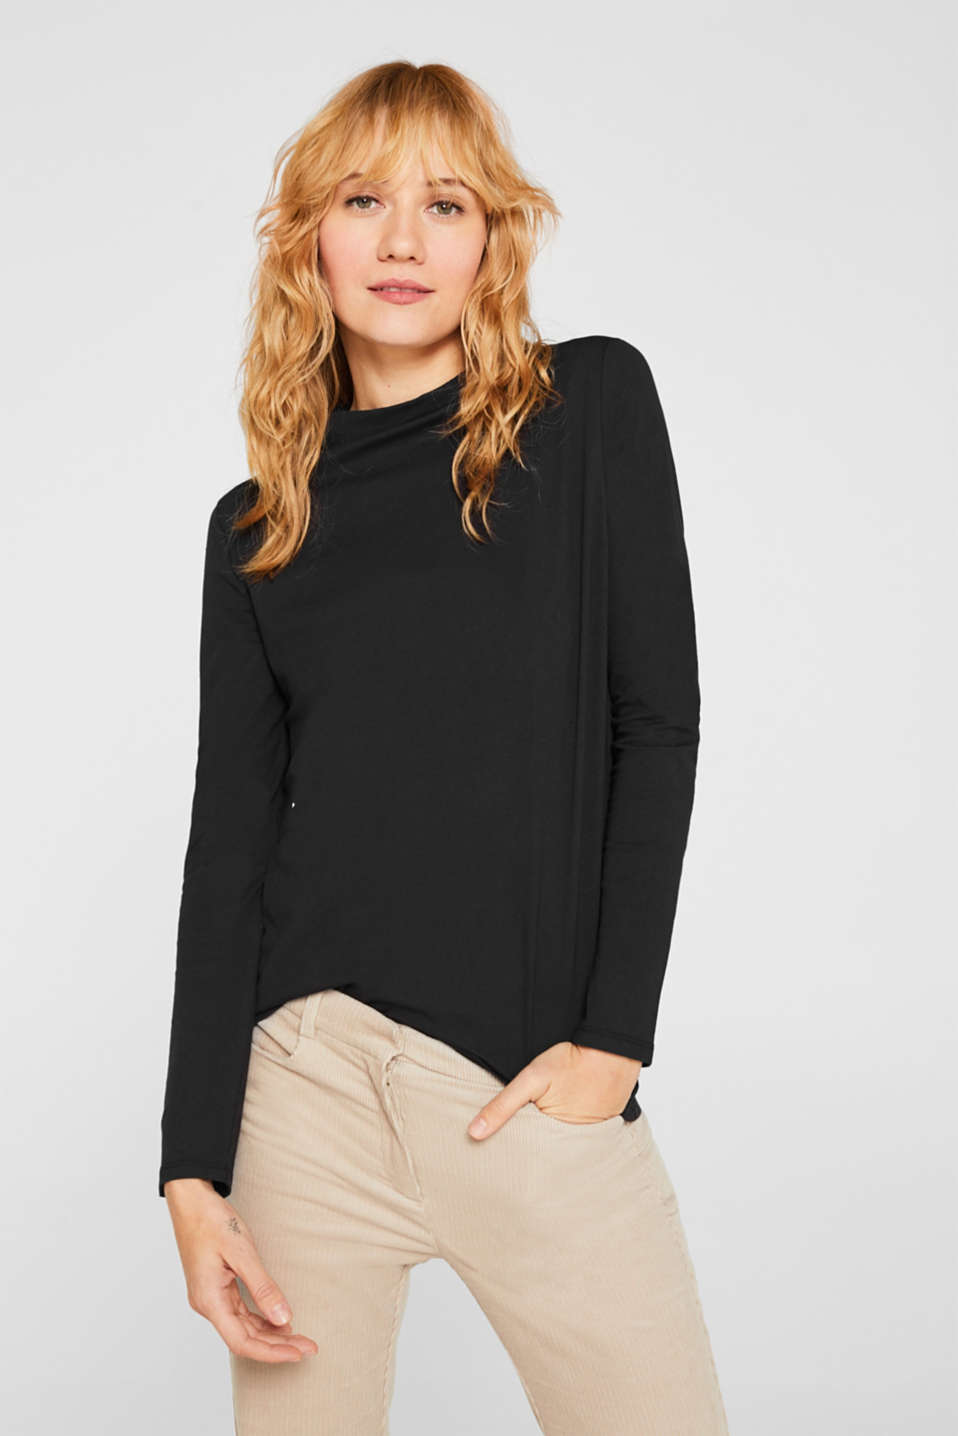 Long sleeve top with a stand-up collar, 100% cotton